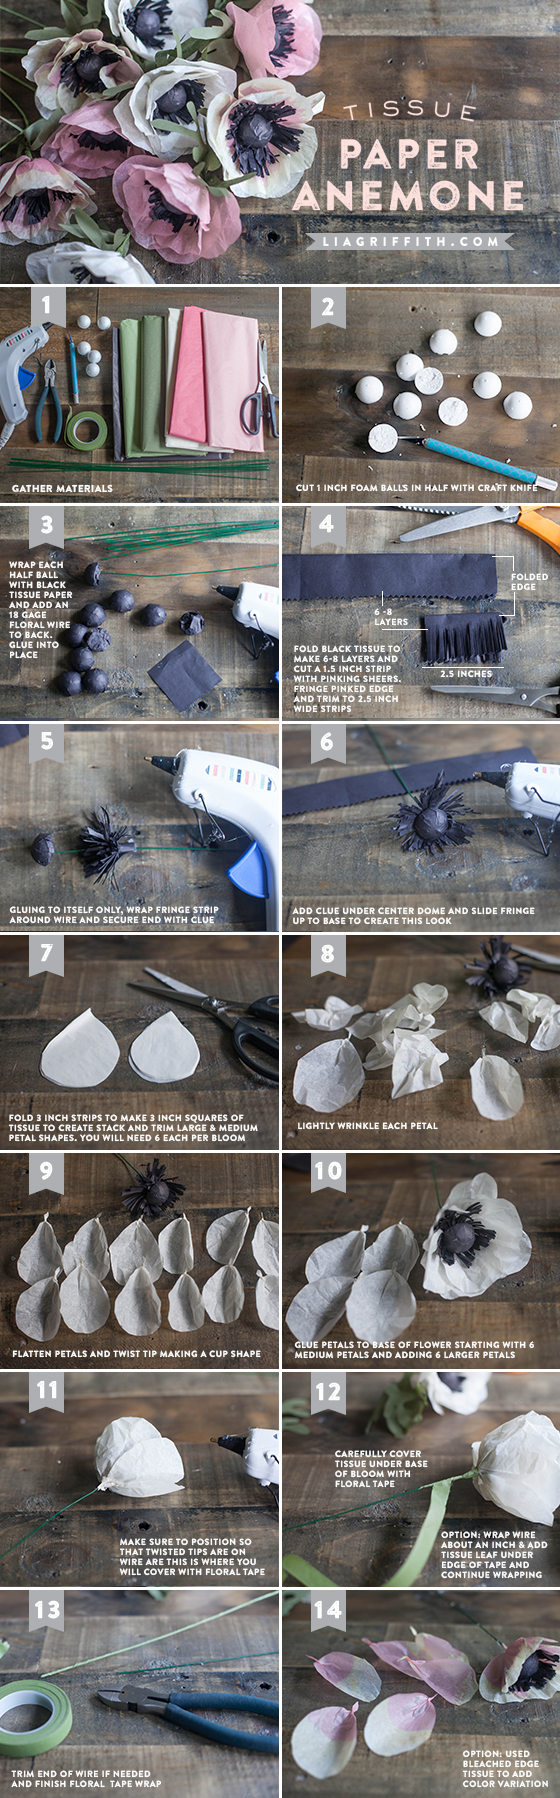 DIY Tissue Paper Anemone Tutorial